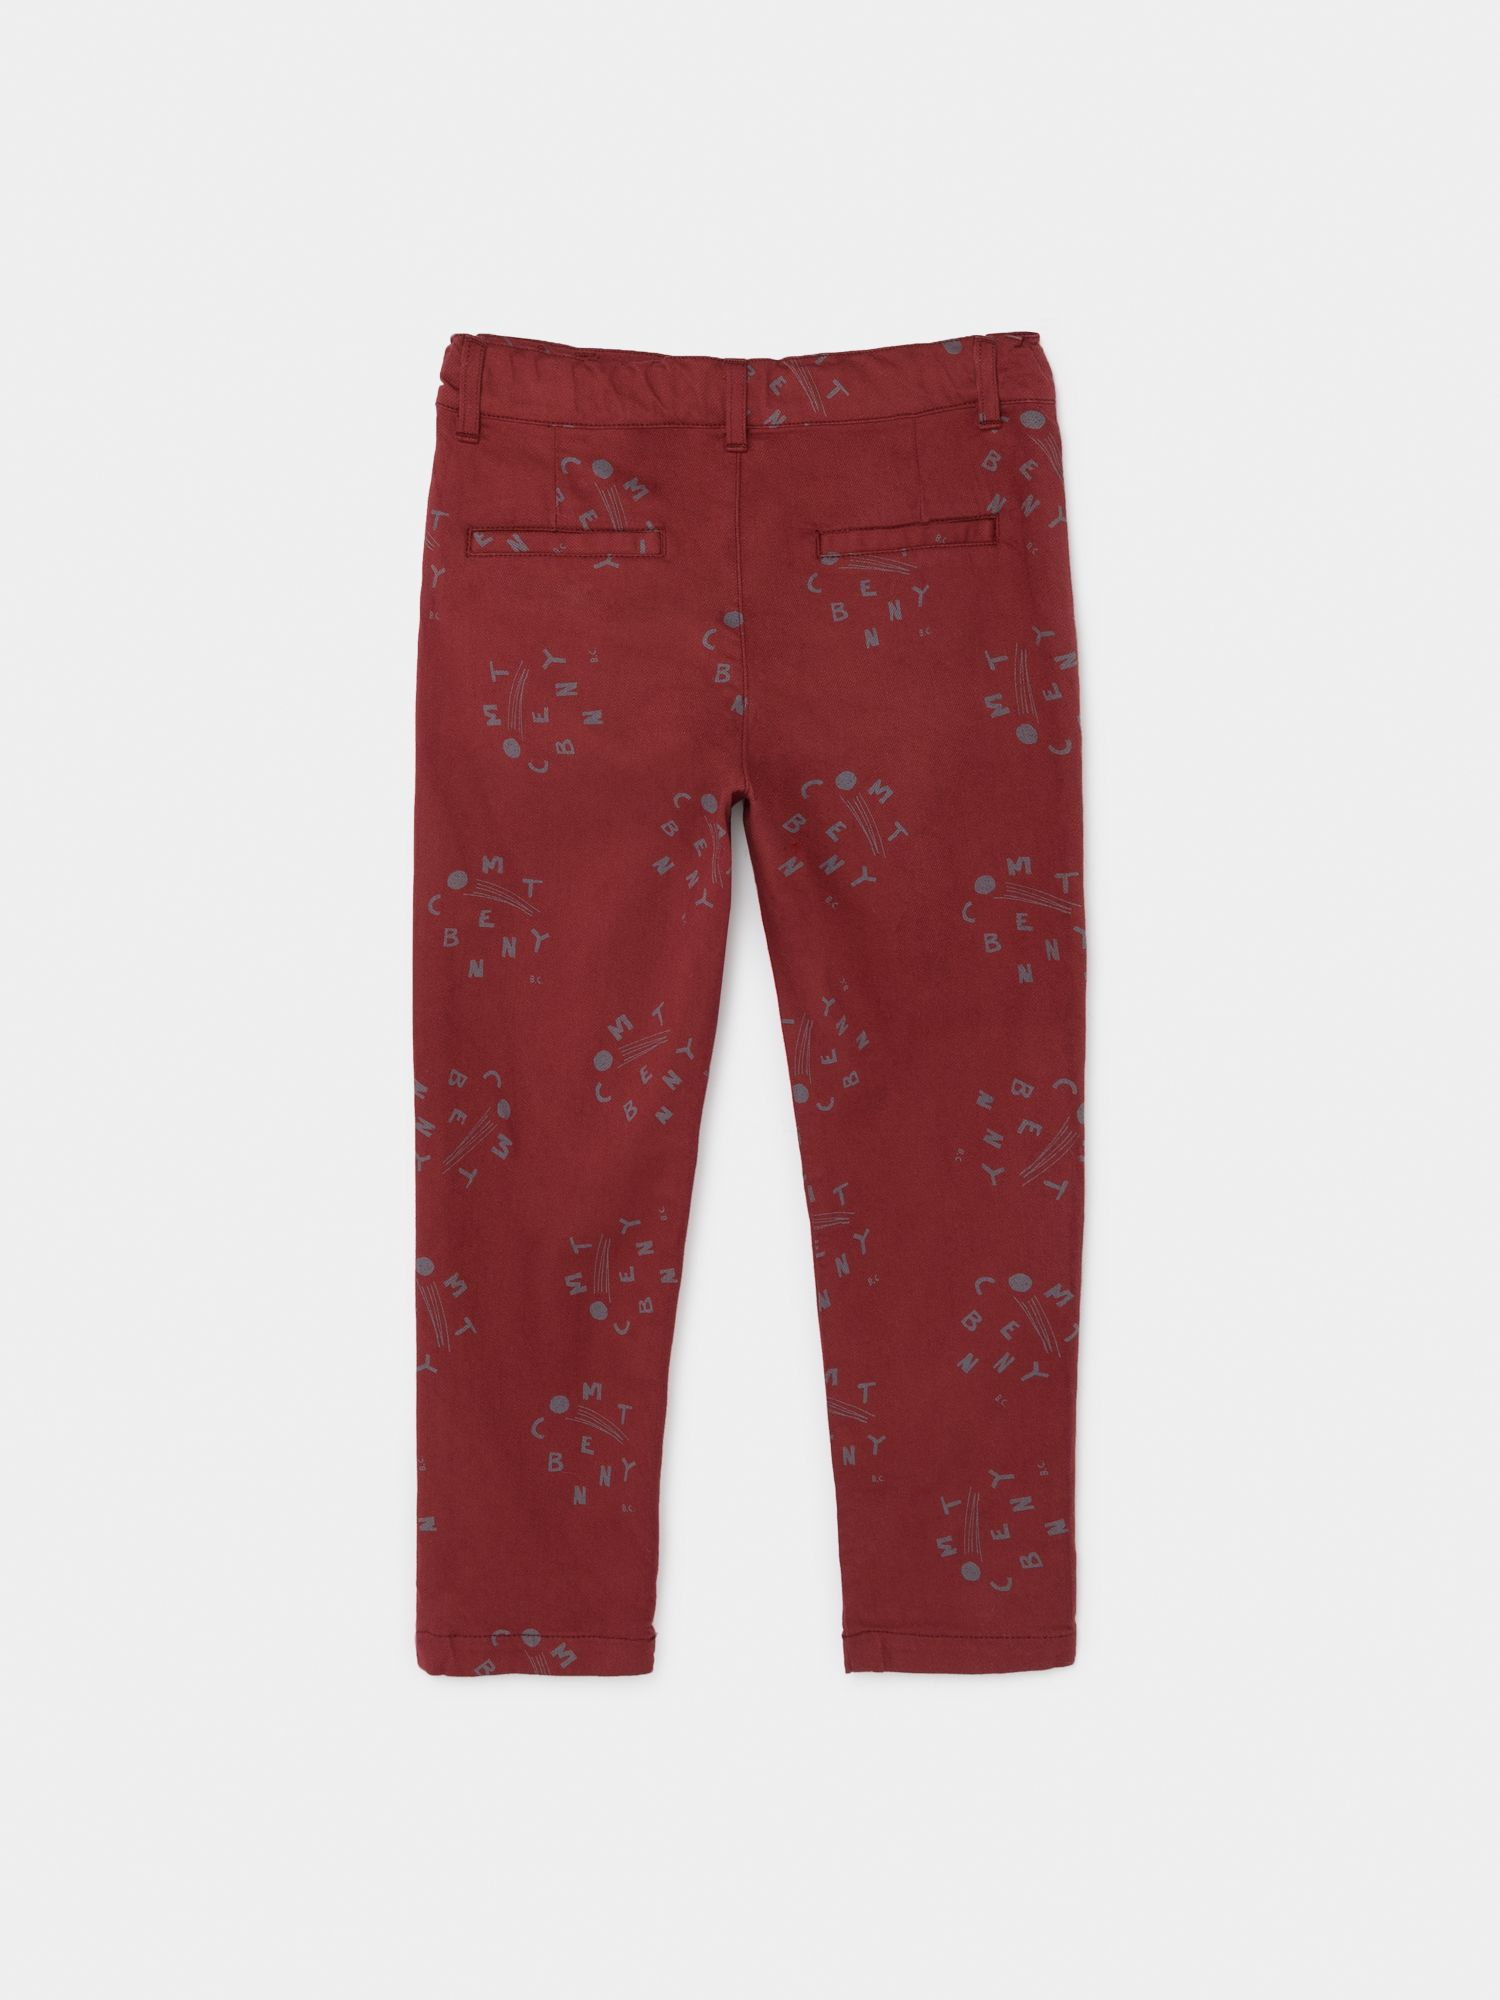 All Over Comet Benny Chino Pants